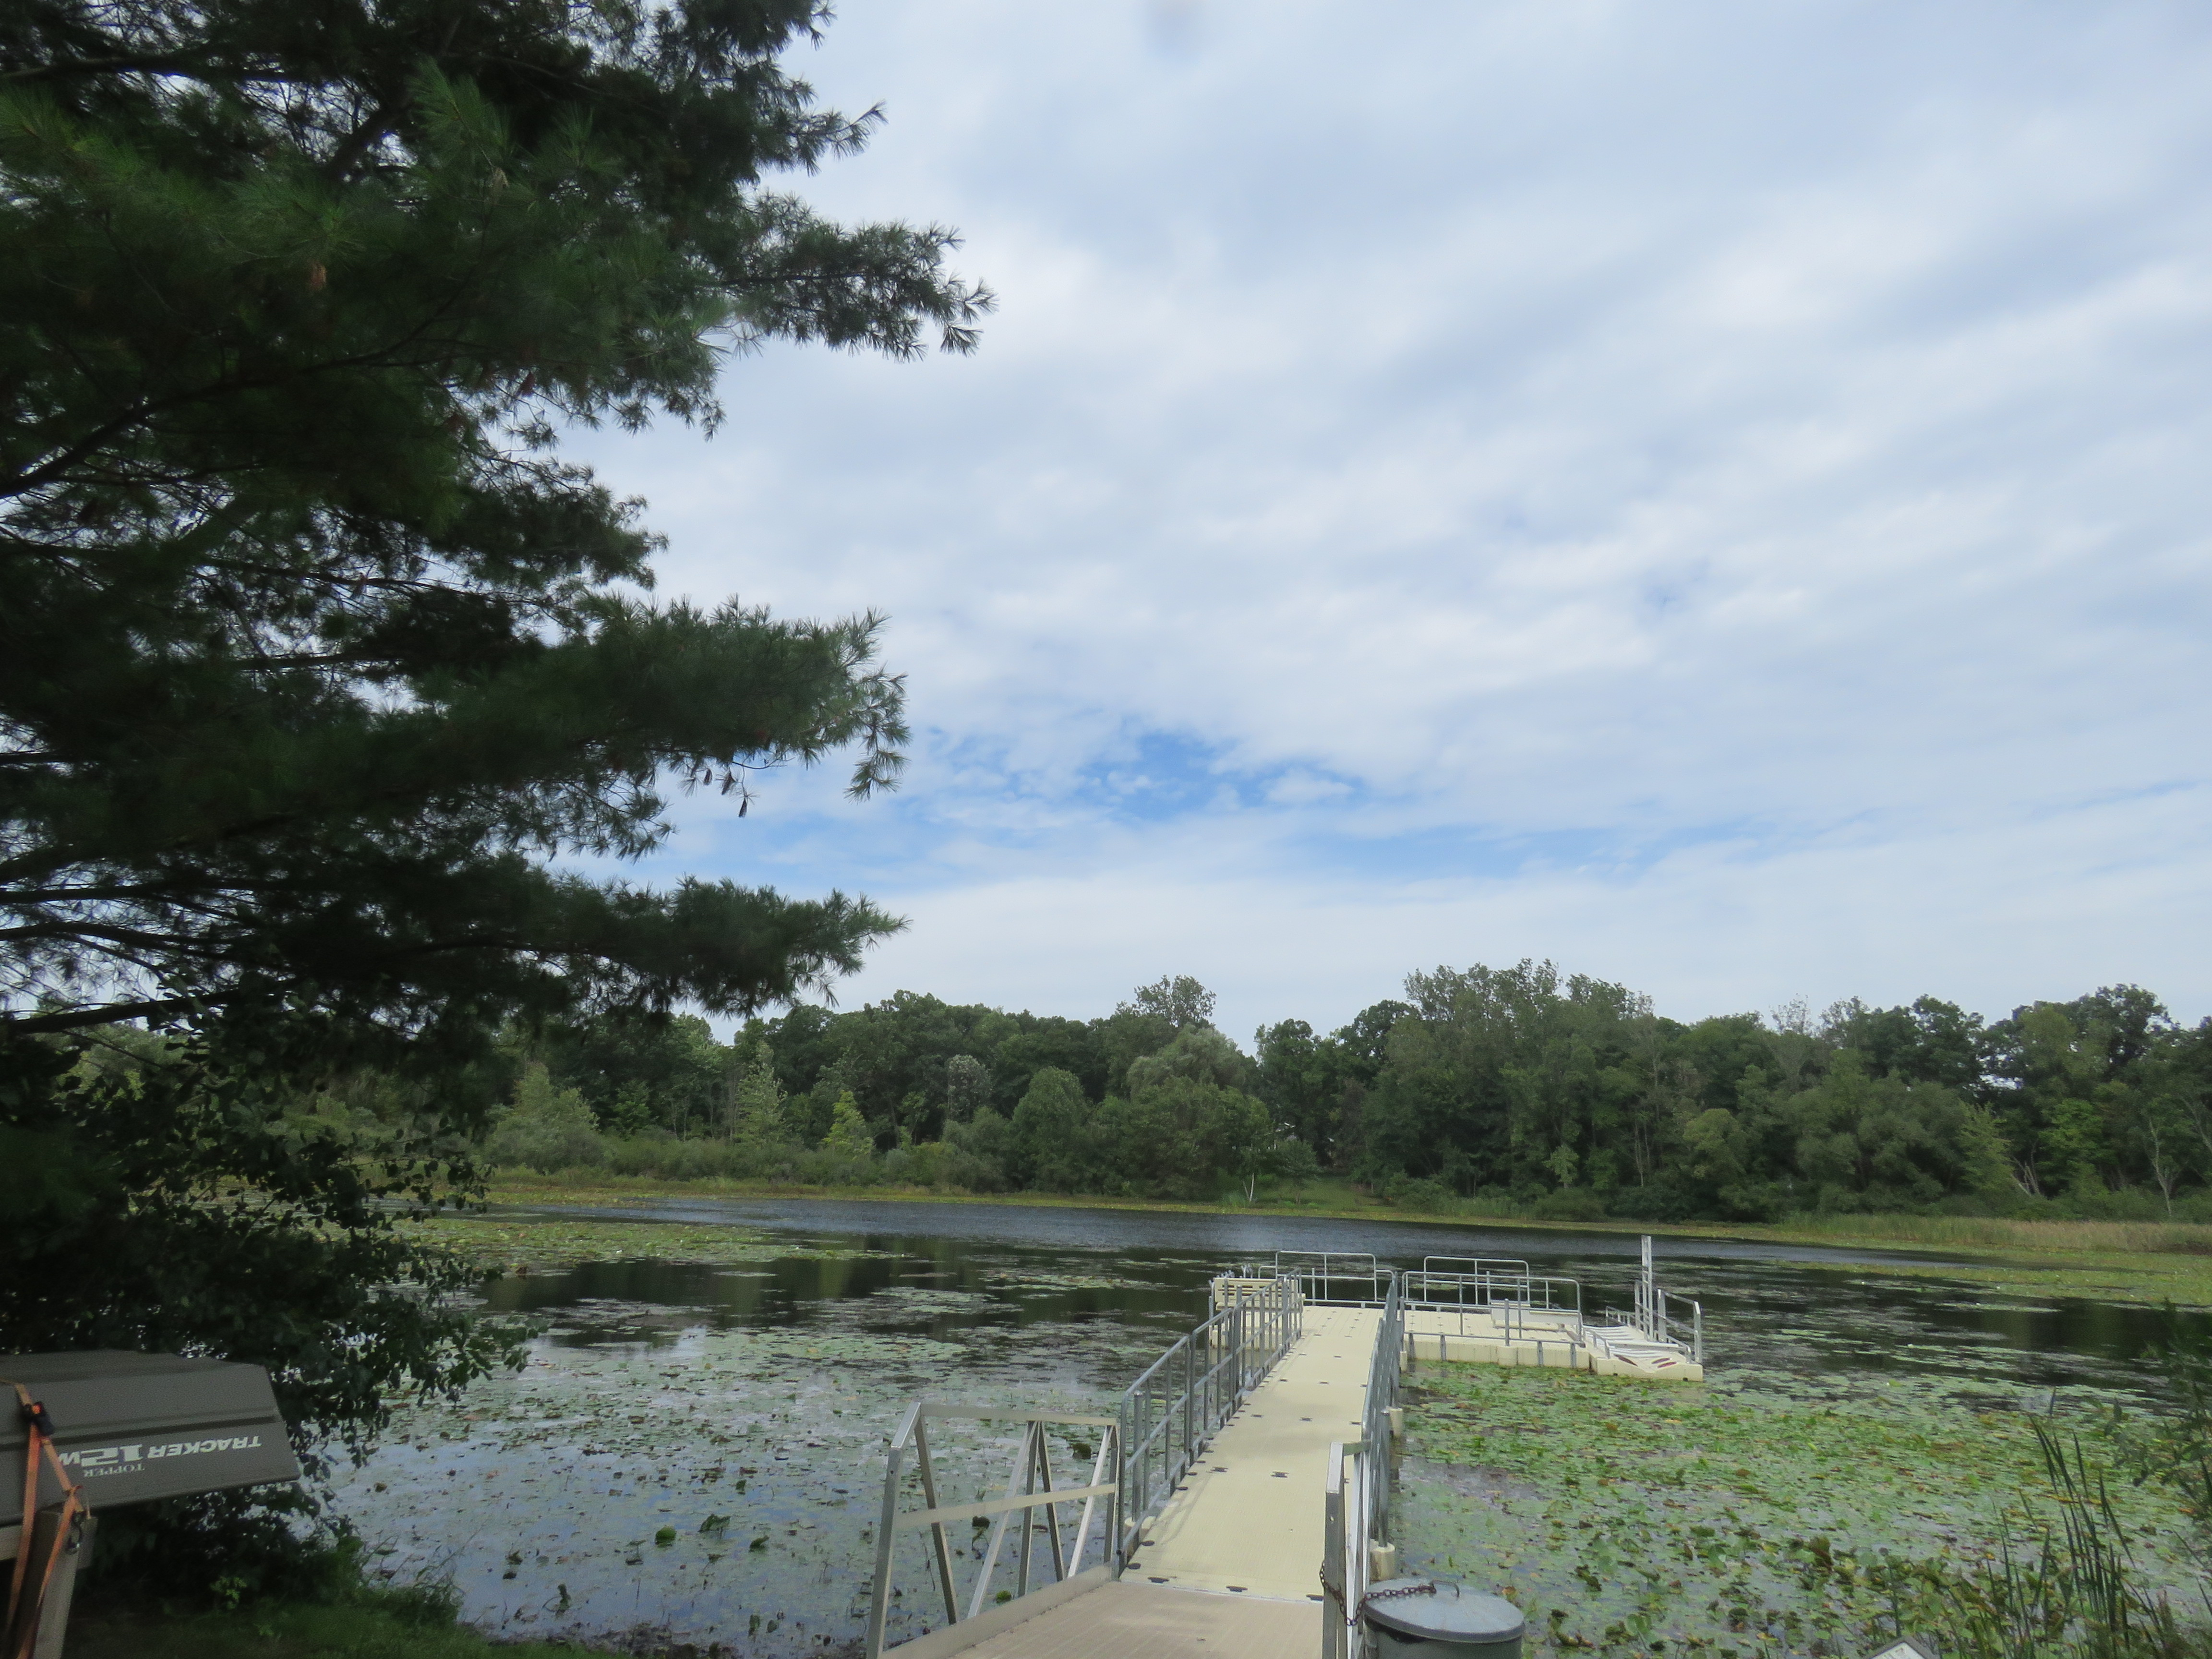 The dock and lake at Lost Lake Nature Preserve.